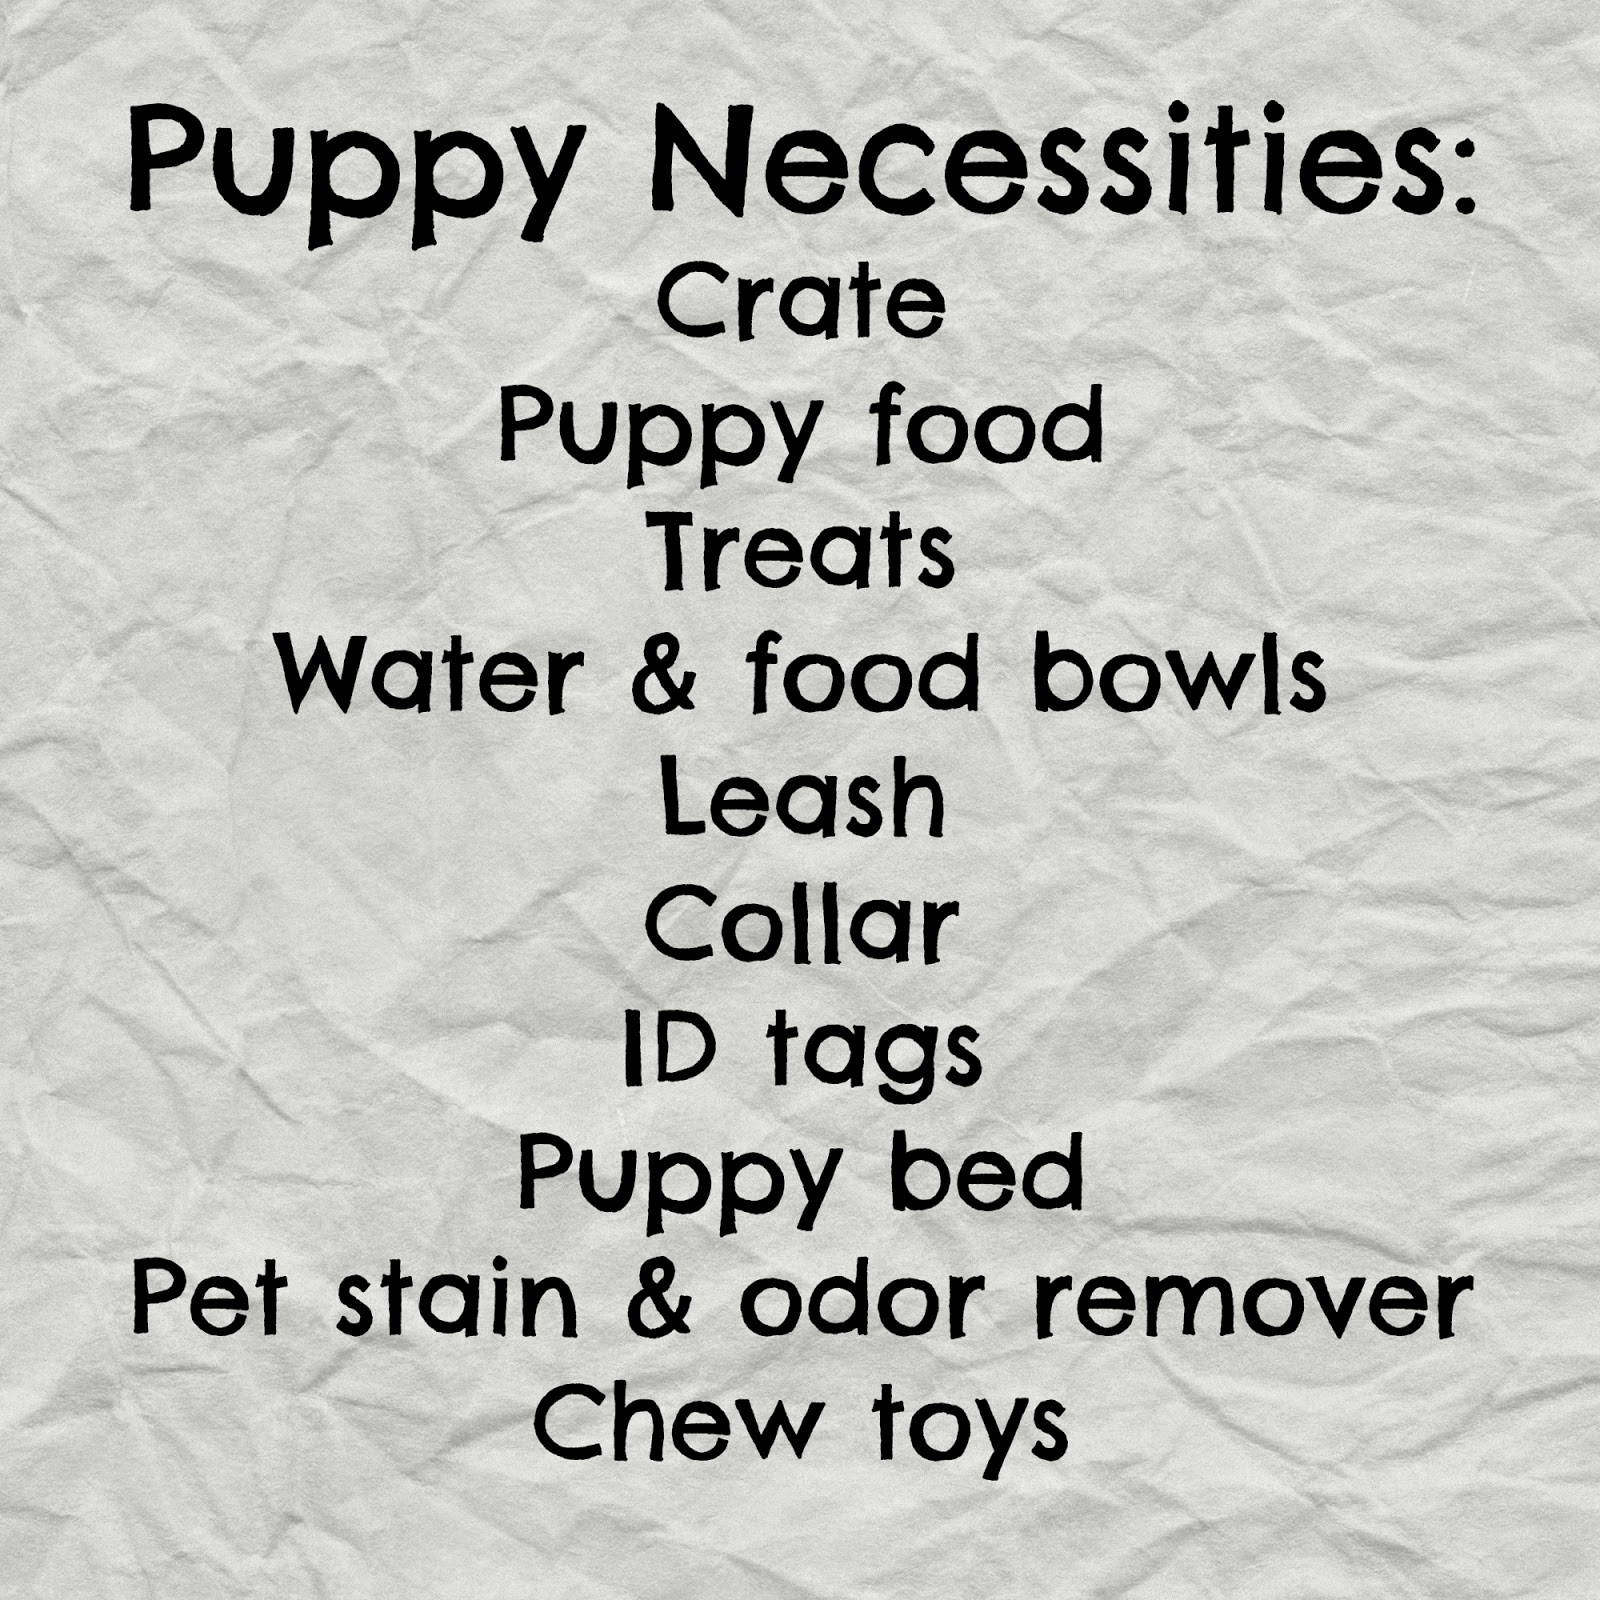 Puppy Shopping Checklist